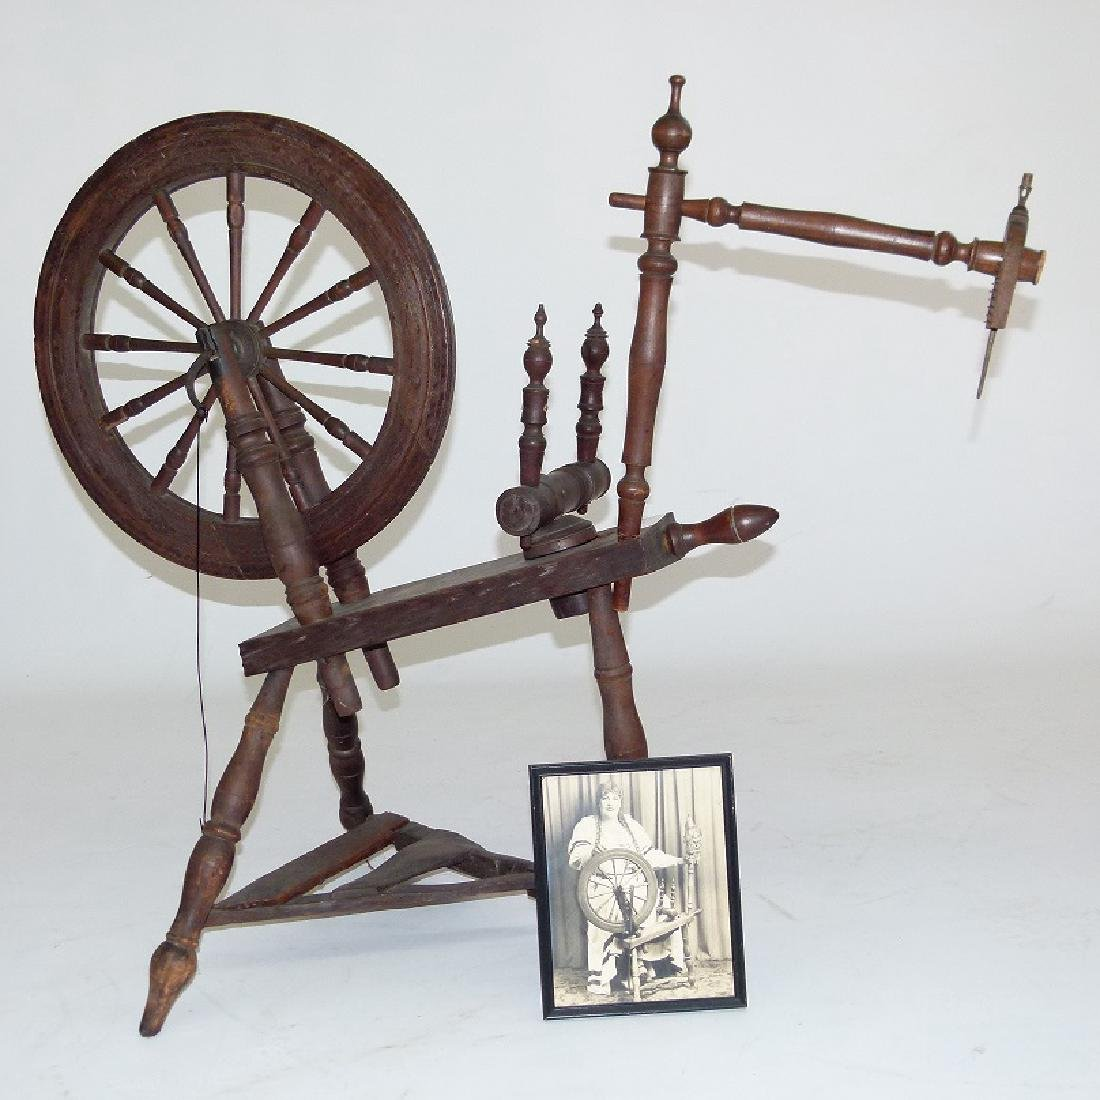 EARLY AMERICAN FLAX SPINNING WHEEL, W/ PHOTO